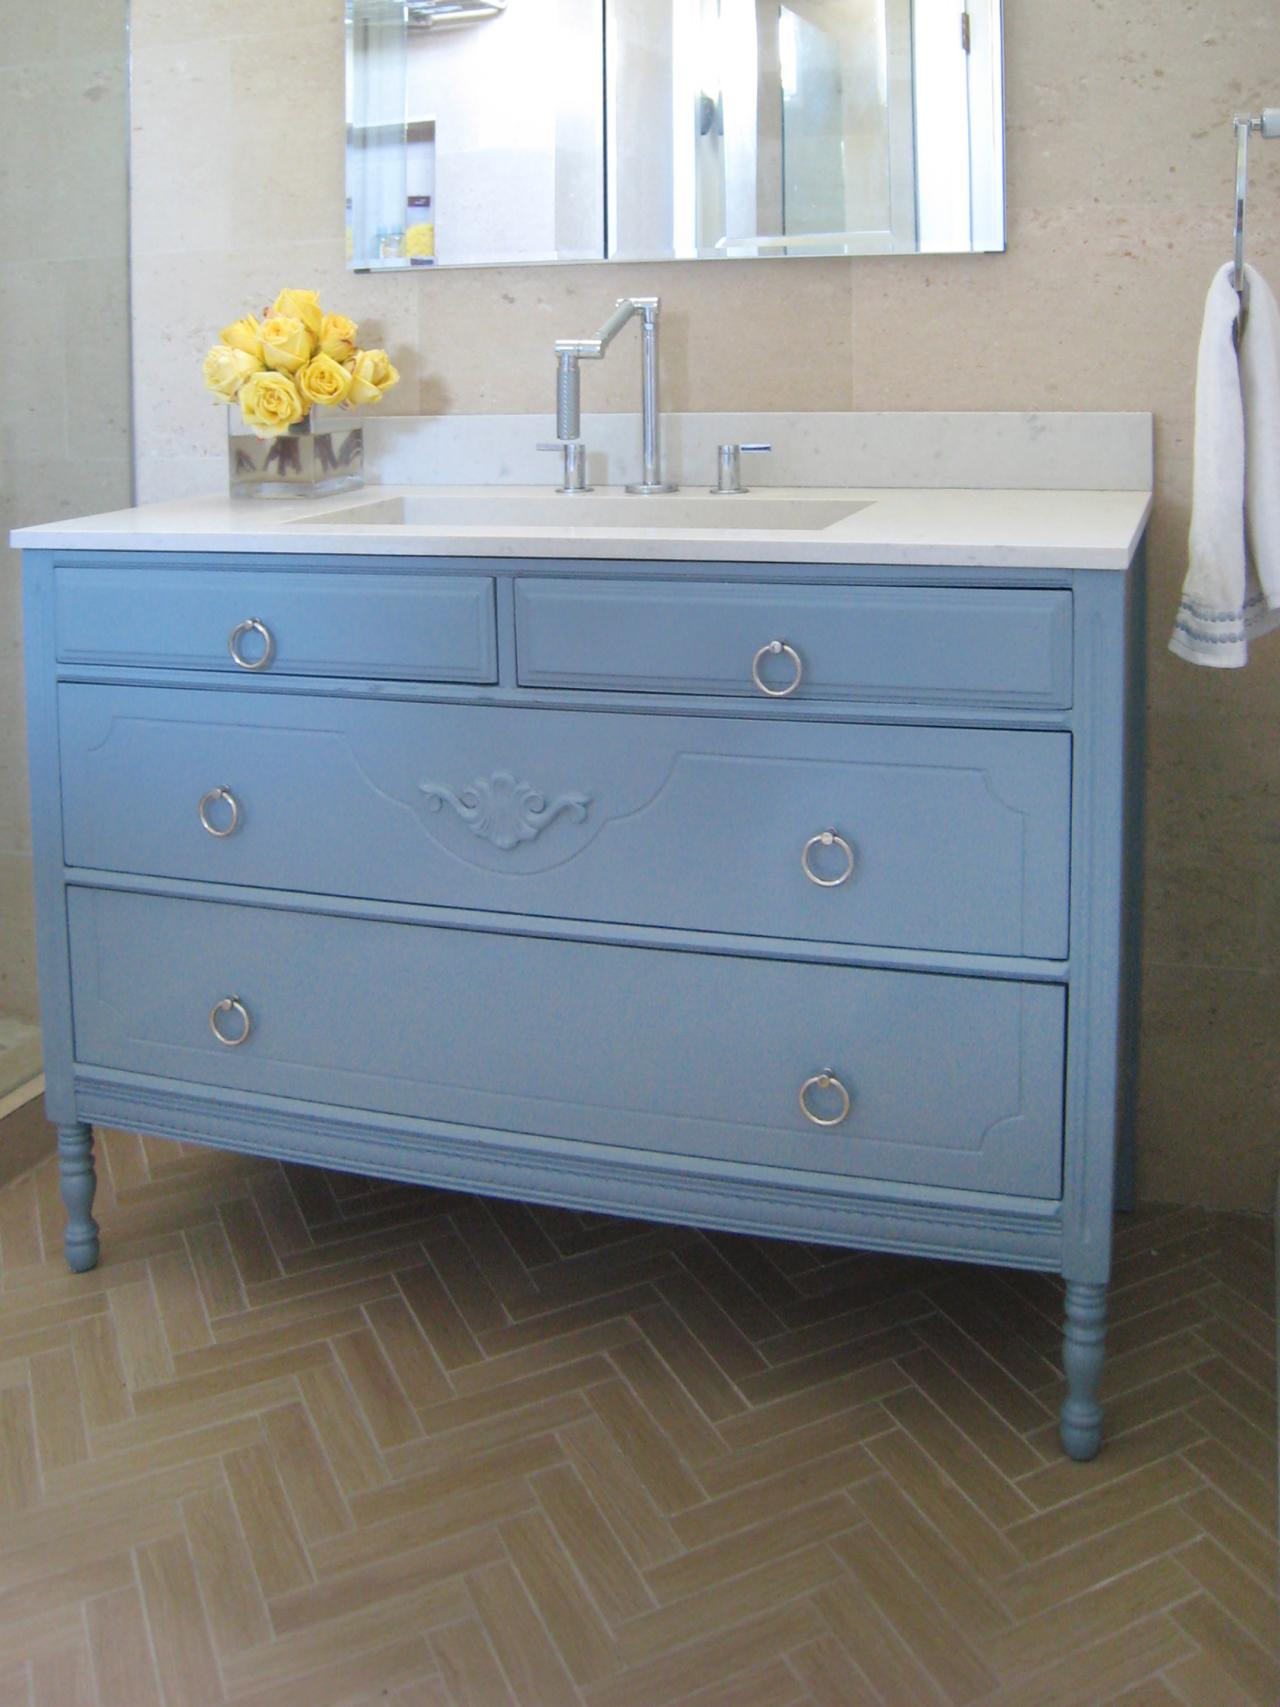 Fabulous How To Turn A Cabinet Into A Bathroom Vanity | Hgtv pertaining to Blue Bathroom Vanity Cabinet